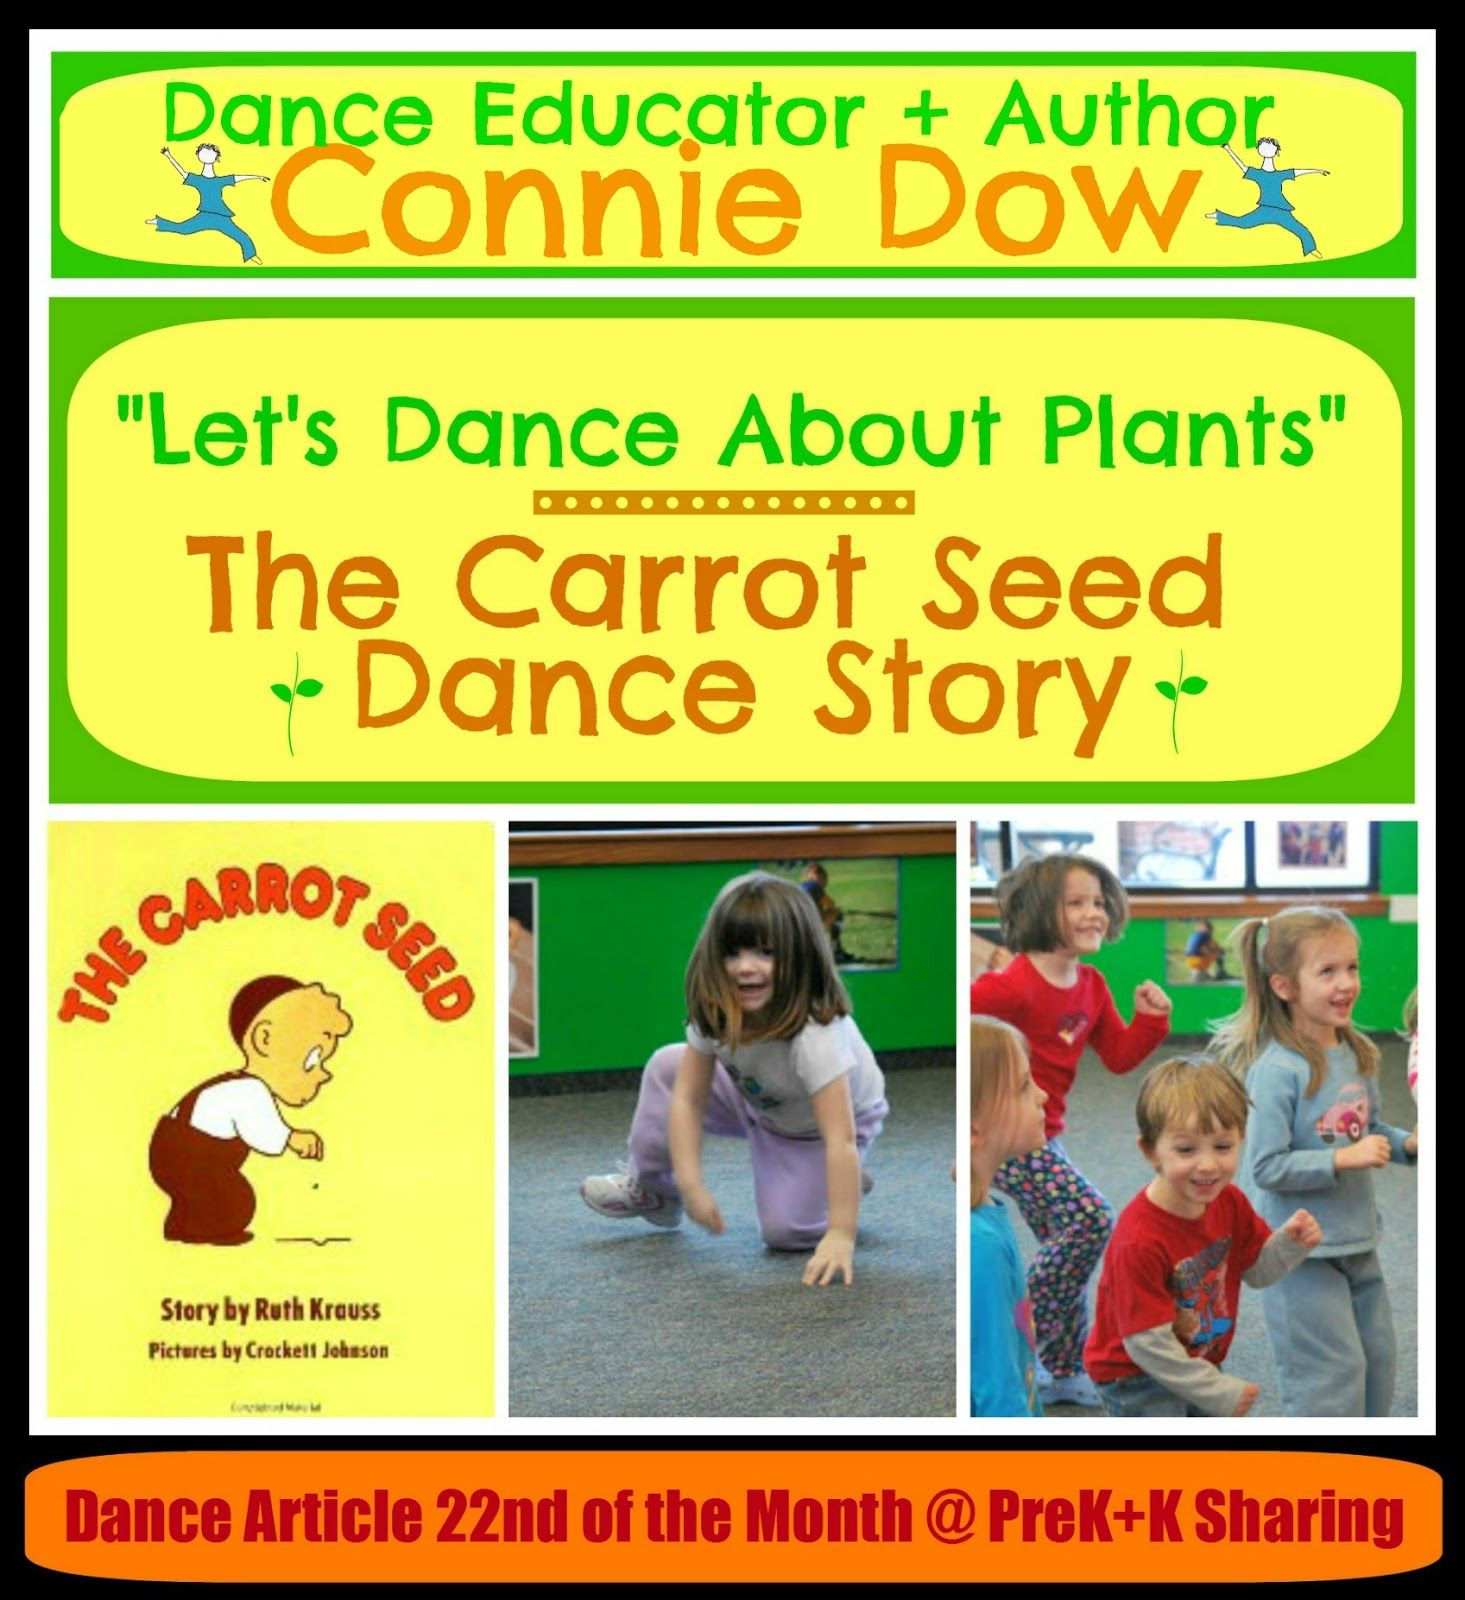 Let S Dance About Plants By Connie Dow At Prek K Sharing